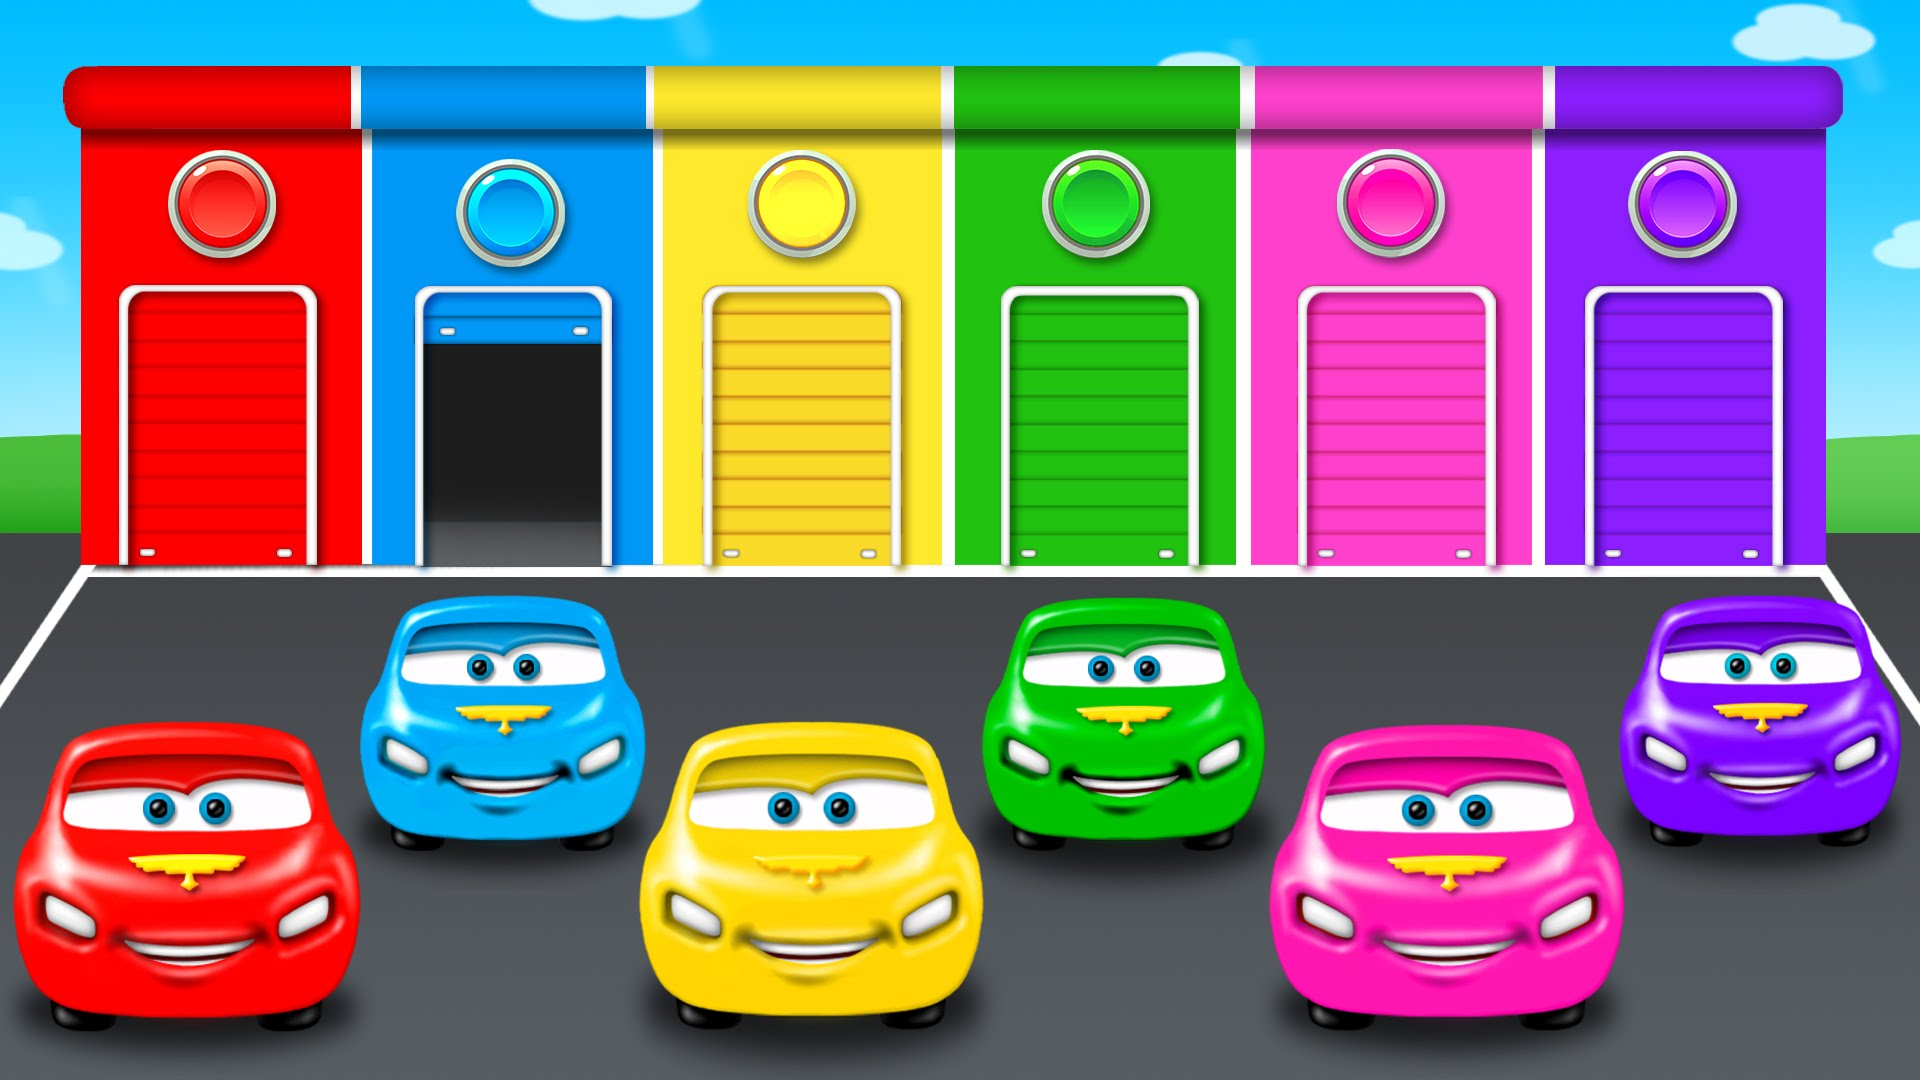 Free photo: Colorful Toy Car - Pollution, Preschool, Preschooler ...